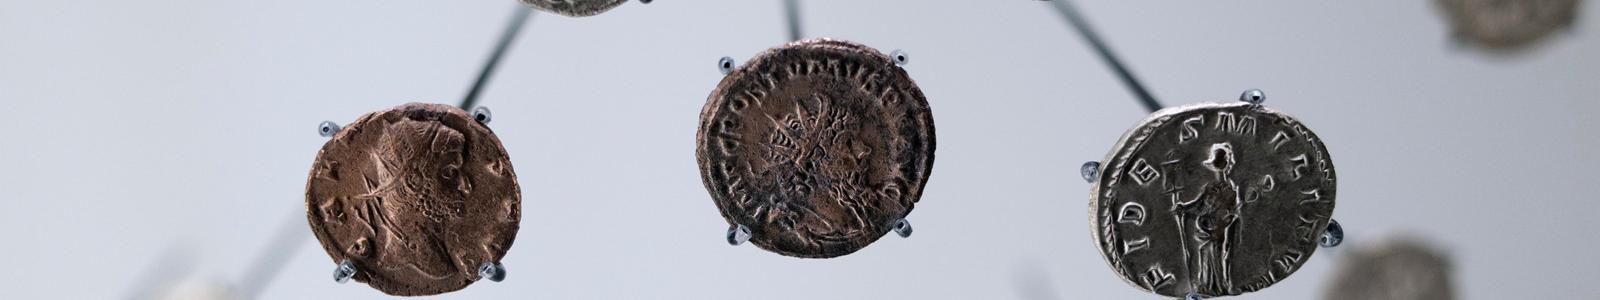 Coin, penny, part of a hoard found at White Lane, Greywell, Mapledurwell and Up Nately, Hampshire in 1989, issued by Alexander III in Scotland, 1250-1280